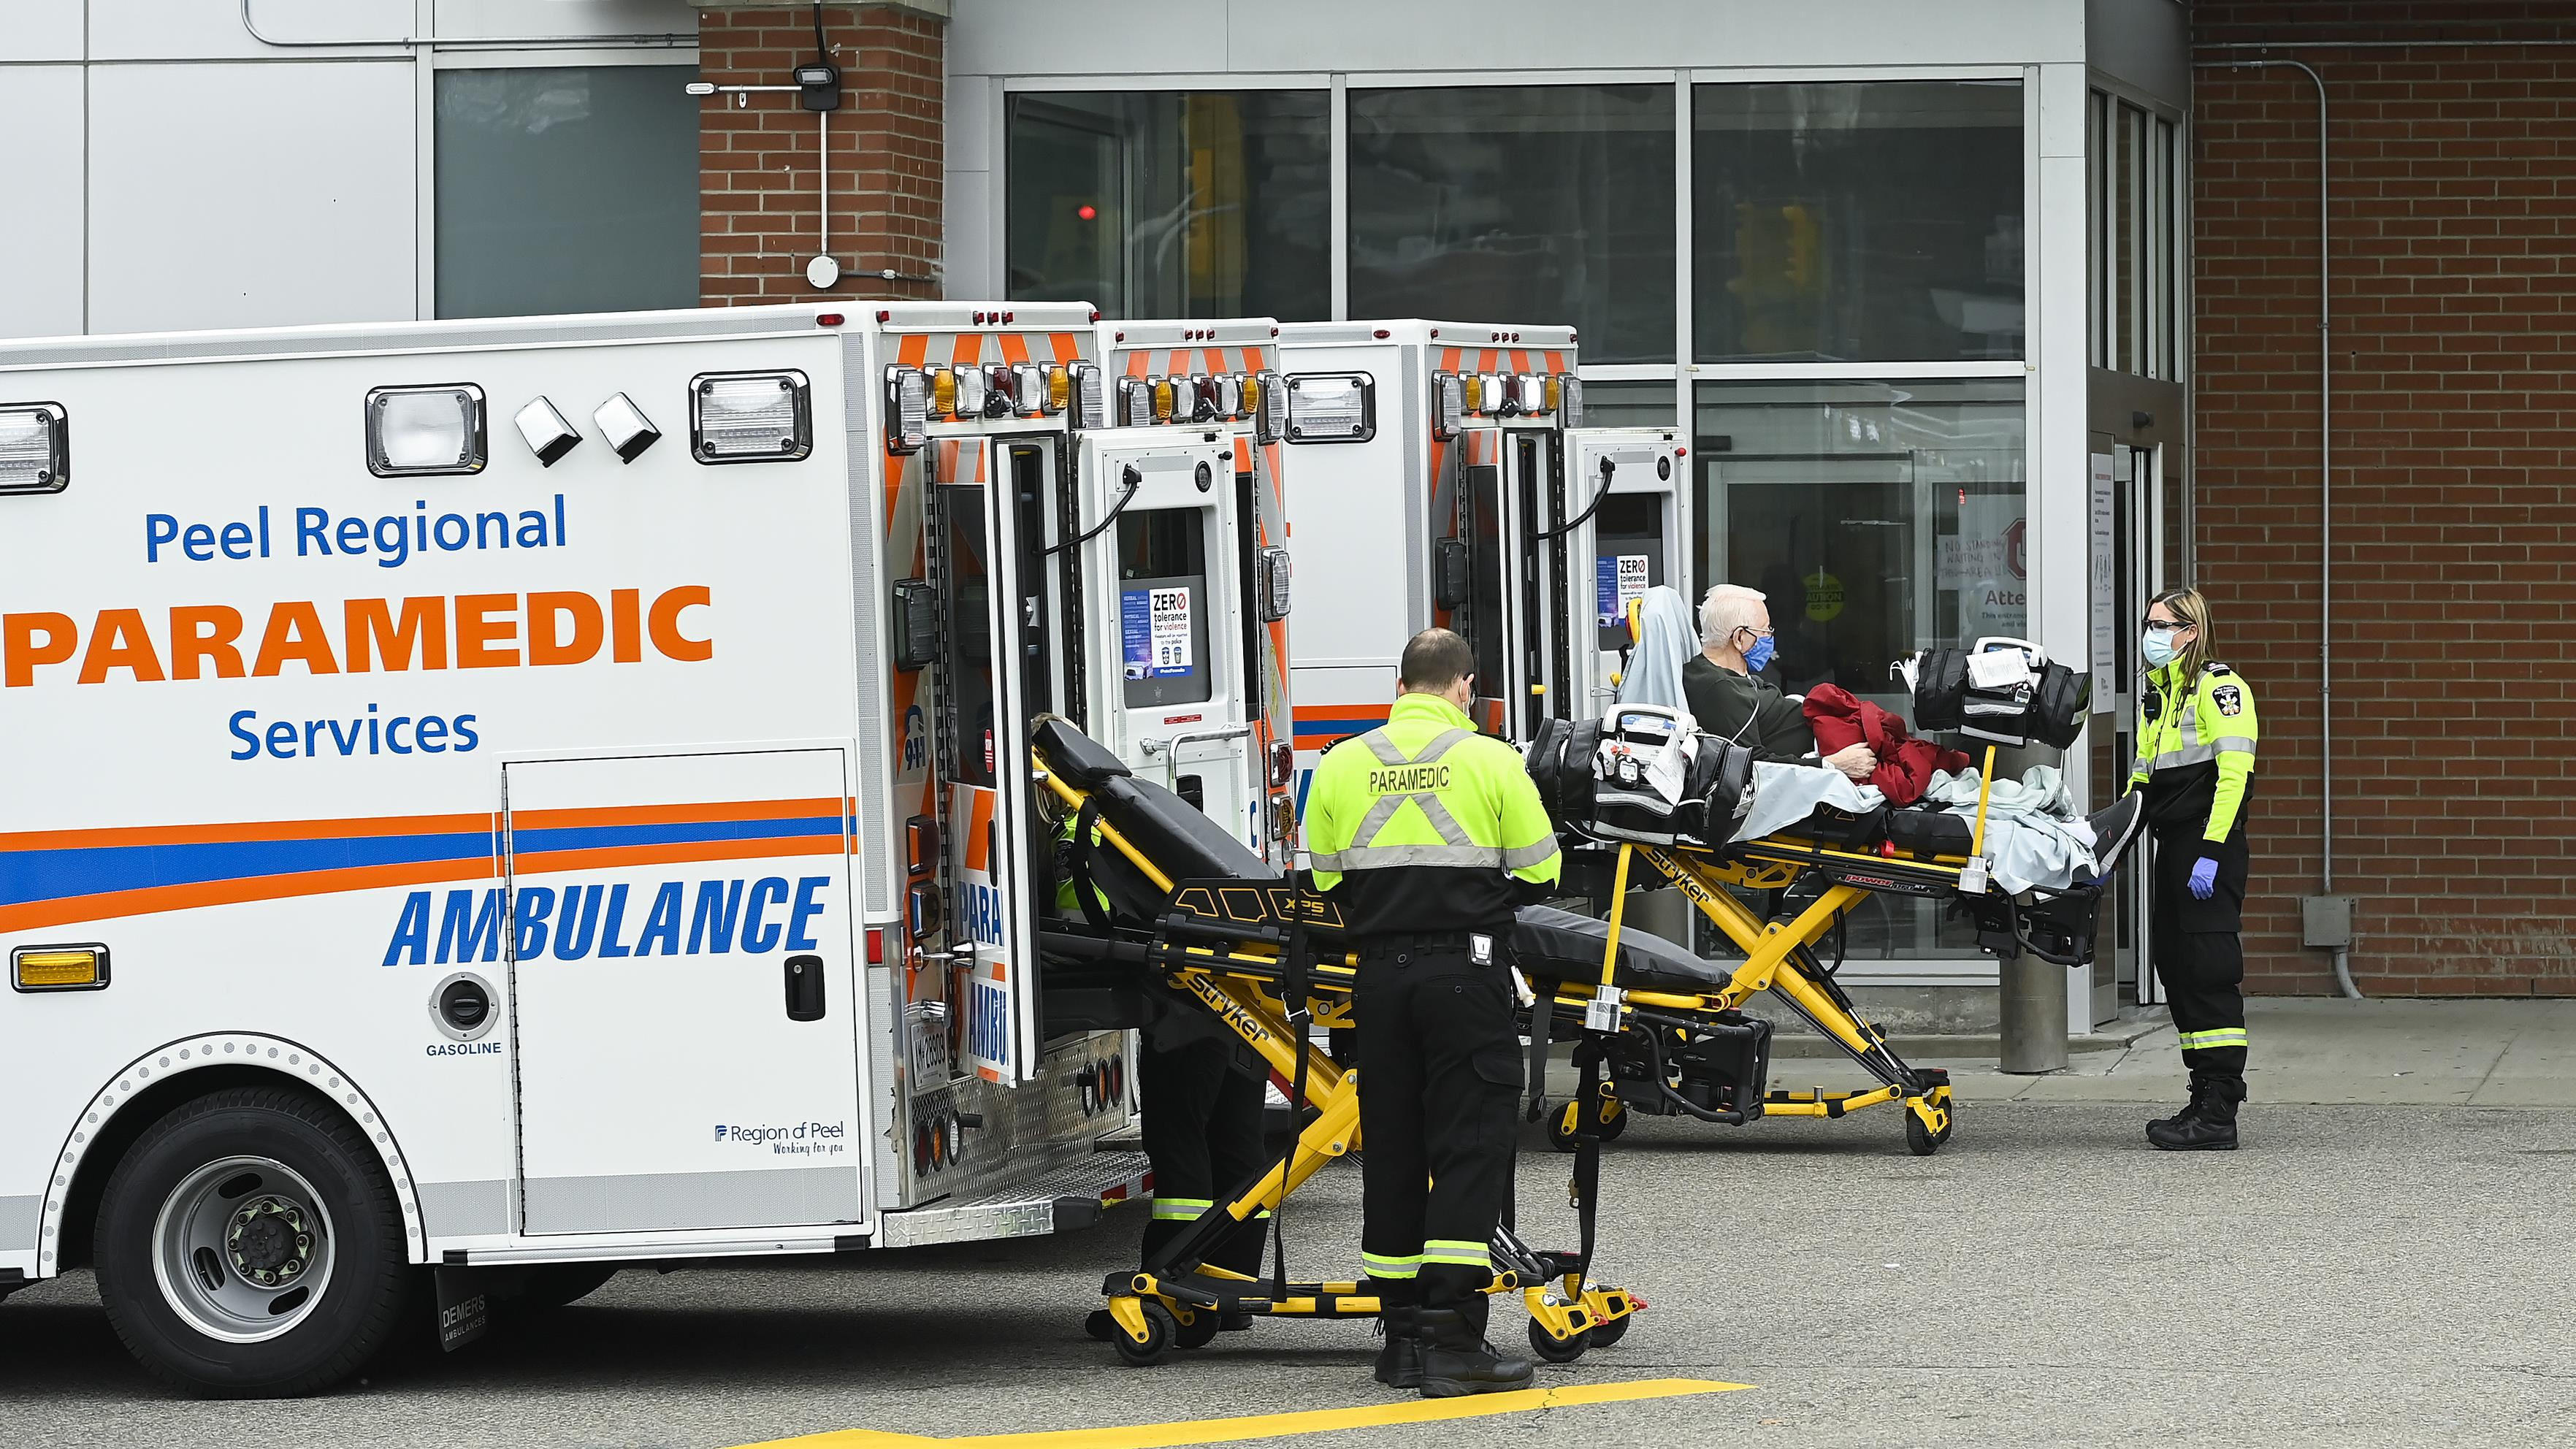 Two ambulances near the emergency entrance of a hospital in Ontario.